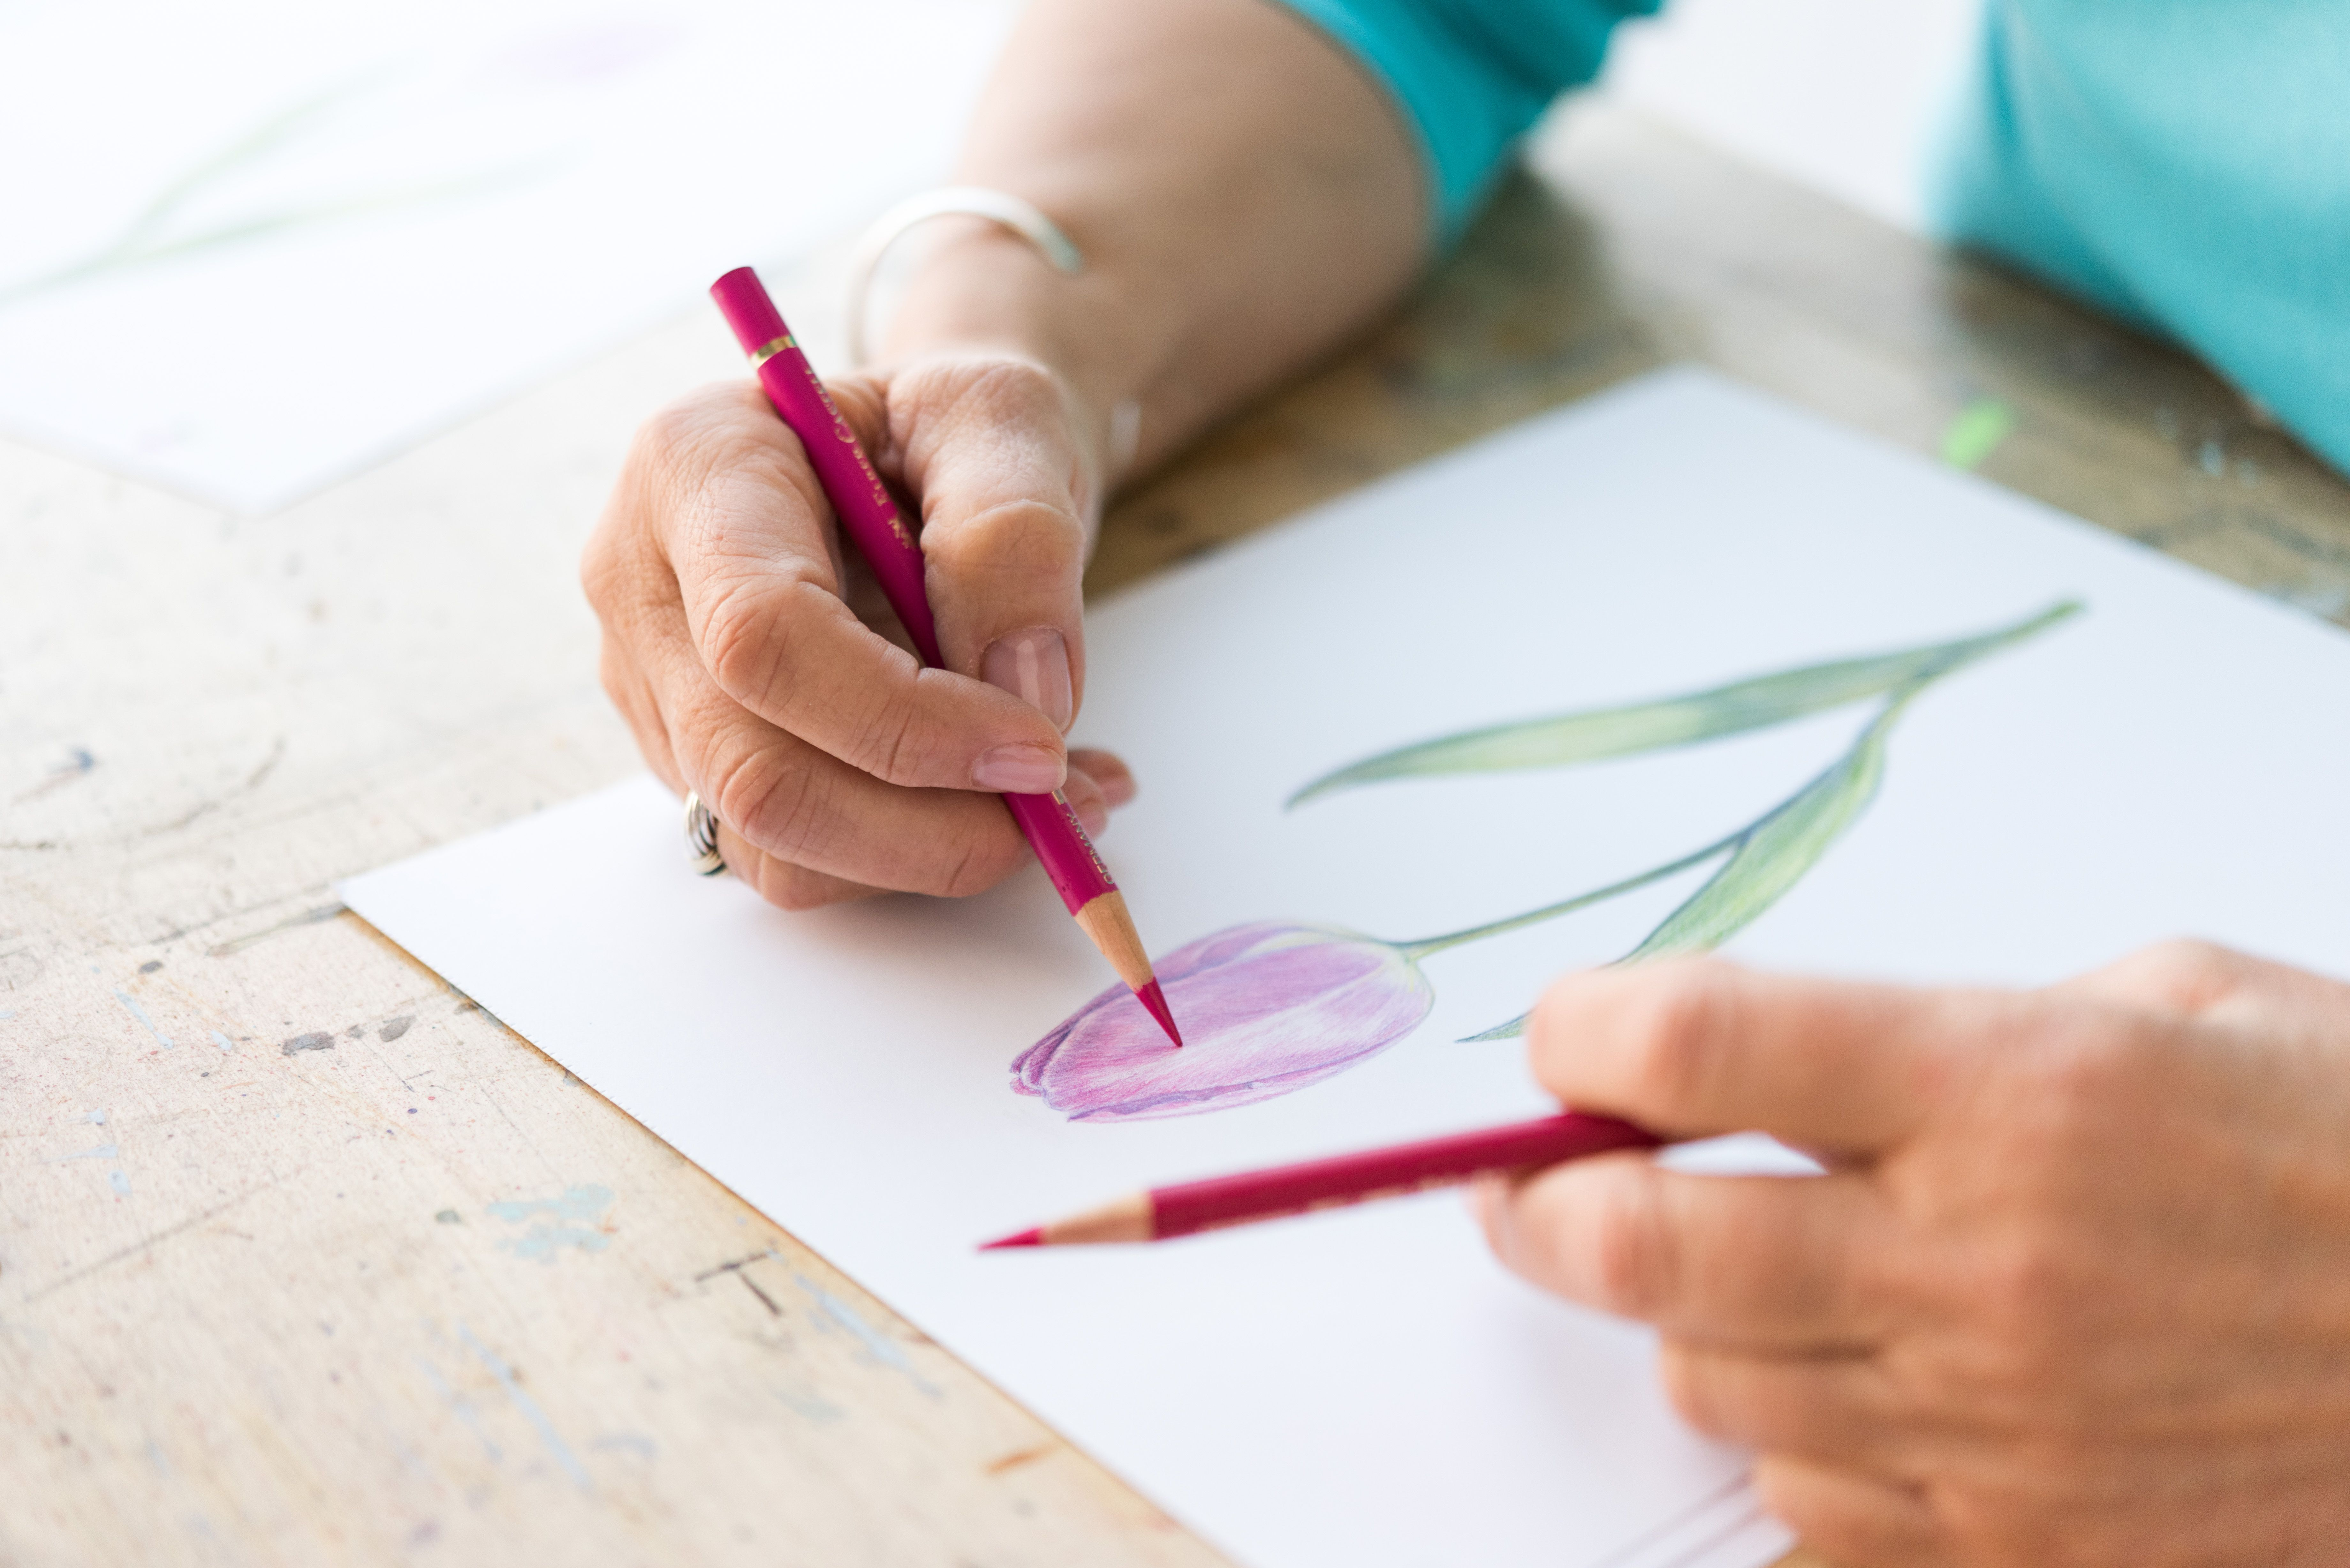 7 Easy Colored Pencil Projects For Beginners To Slay With